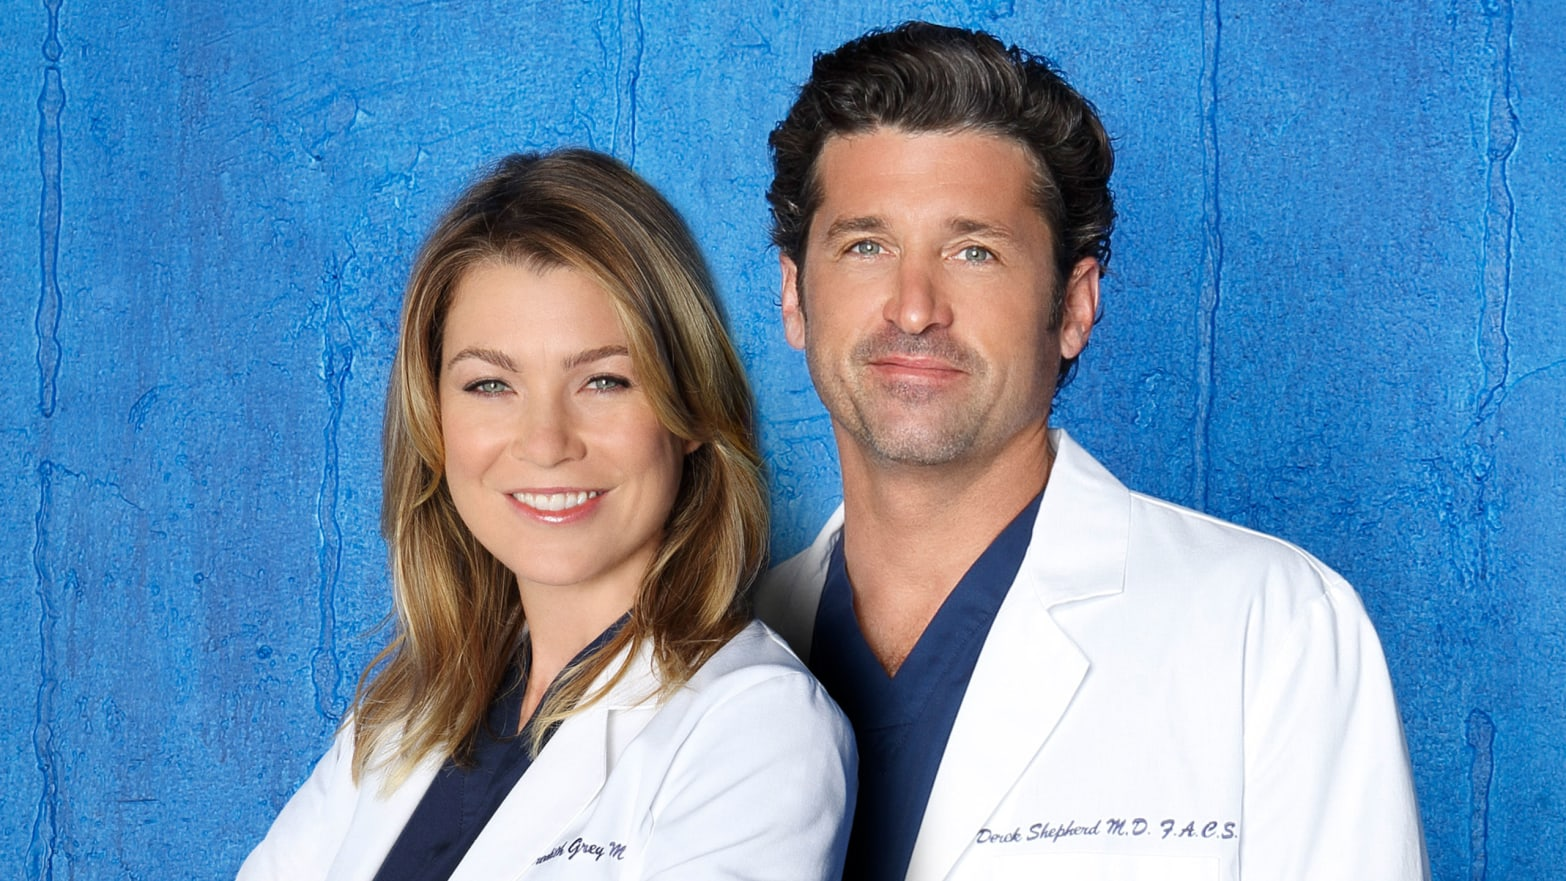 ellen-pompeo-reveals-she-nearly-left-greys-anatomy-after-learning-patrick-dempsey-was-getting-almost-twice-her-salary